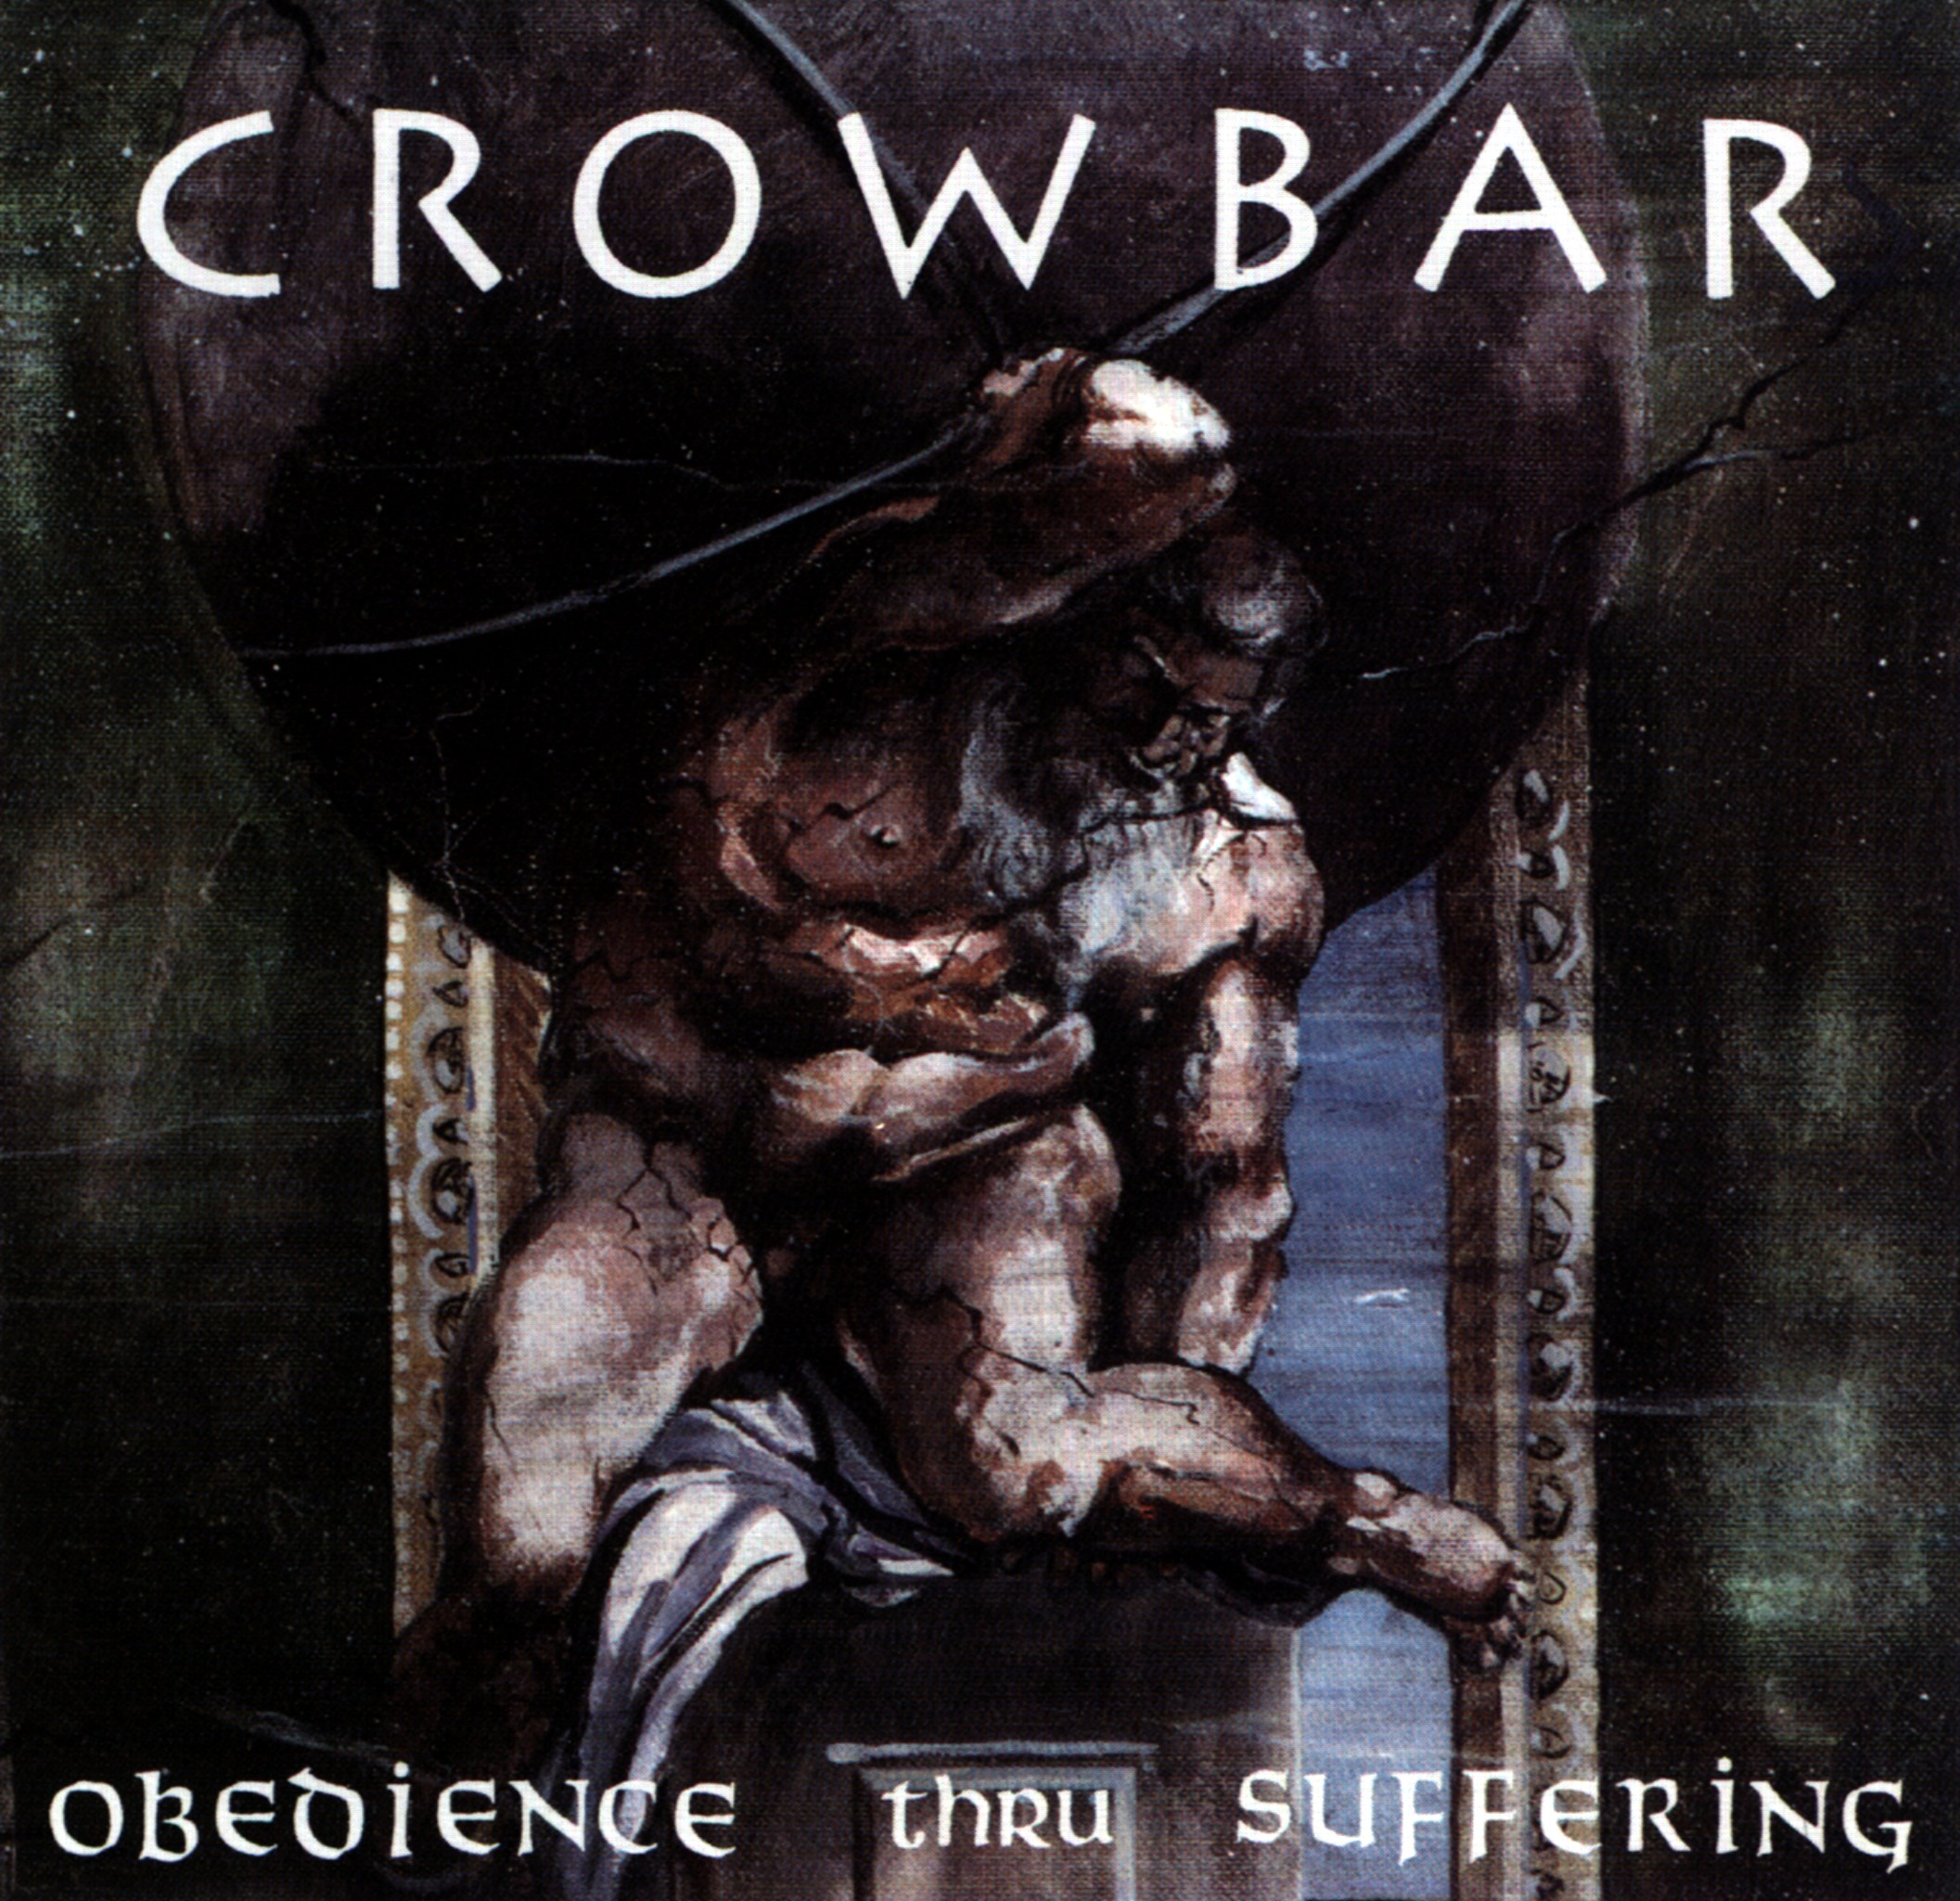 Crowbar - Obedience Thru Suffering - Fro